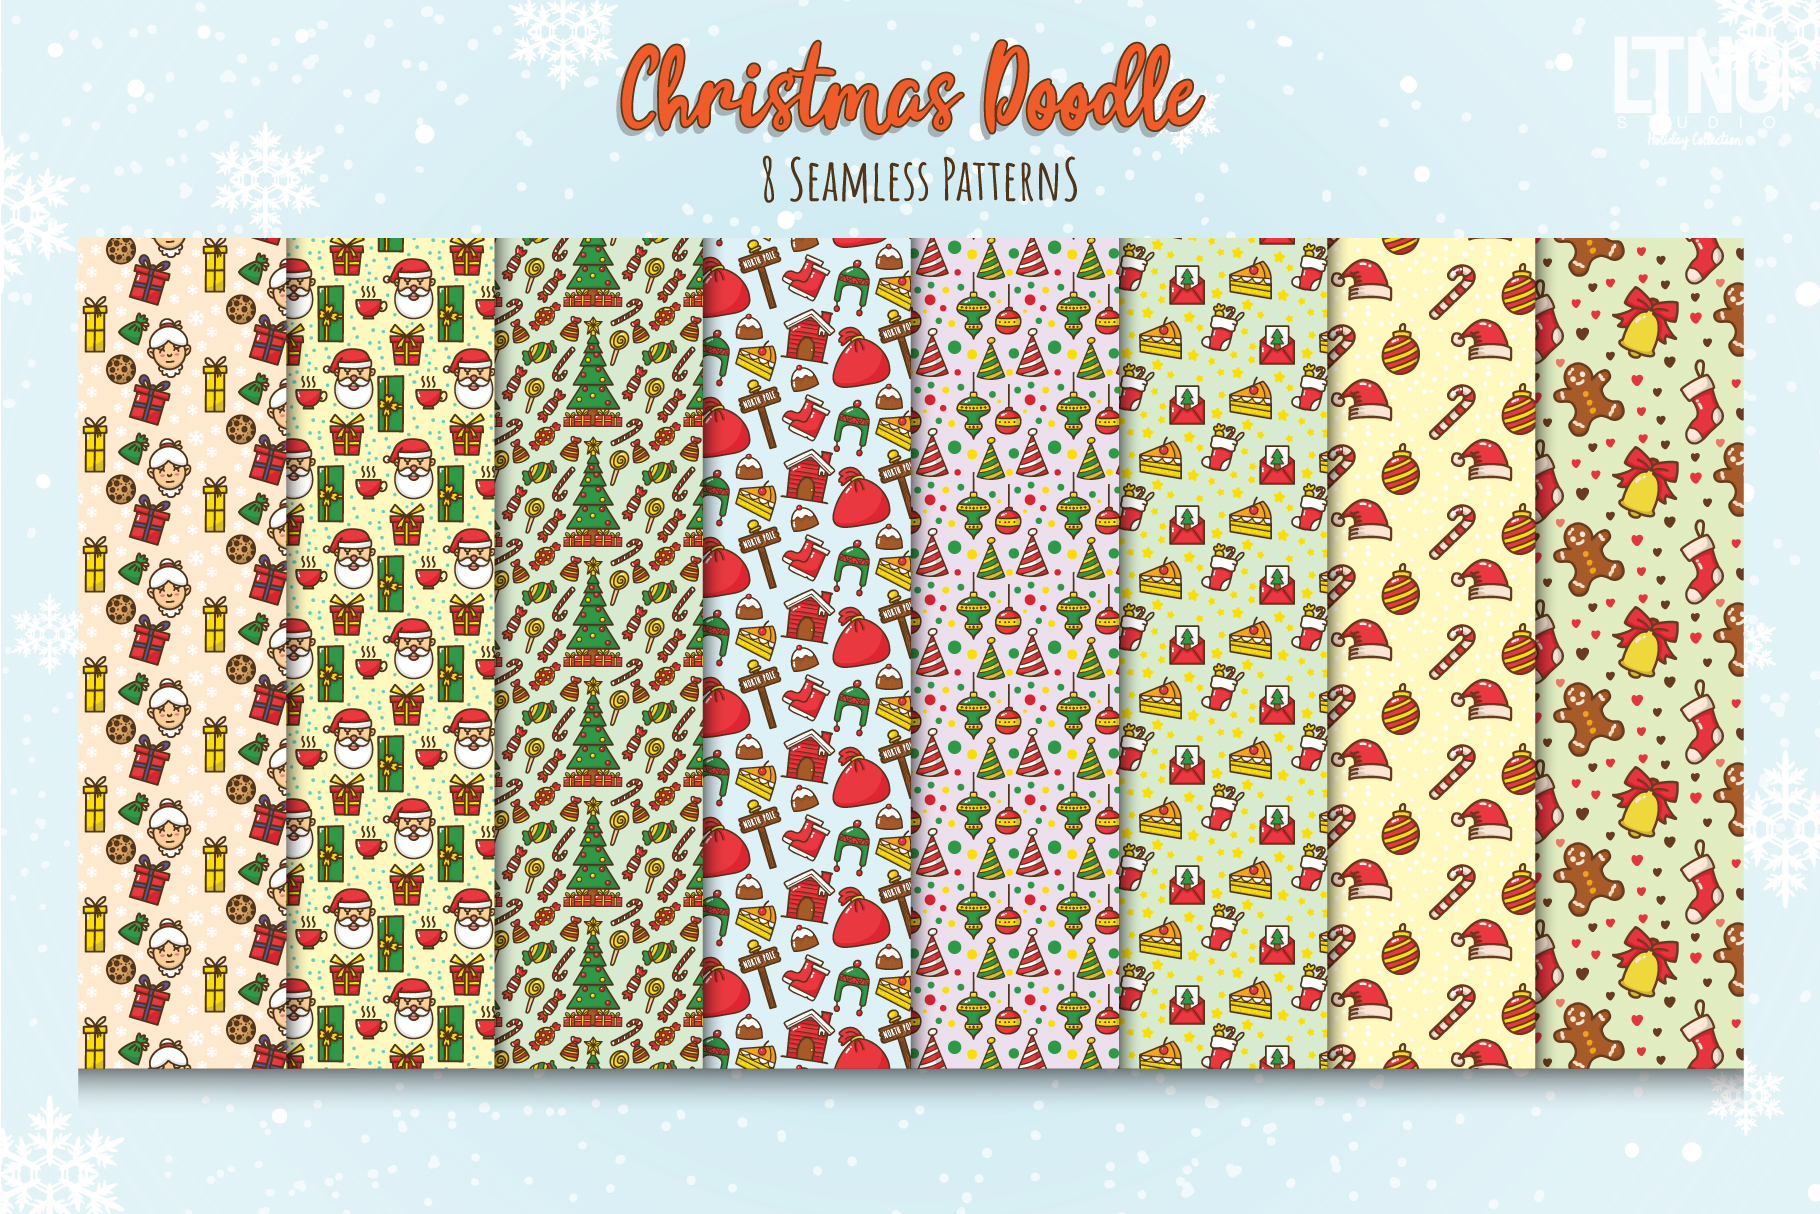 Christmas Doodle Graphic Element Part 1 example image 3